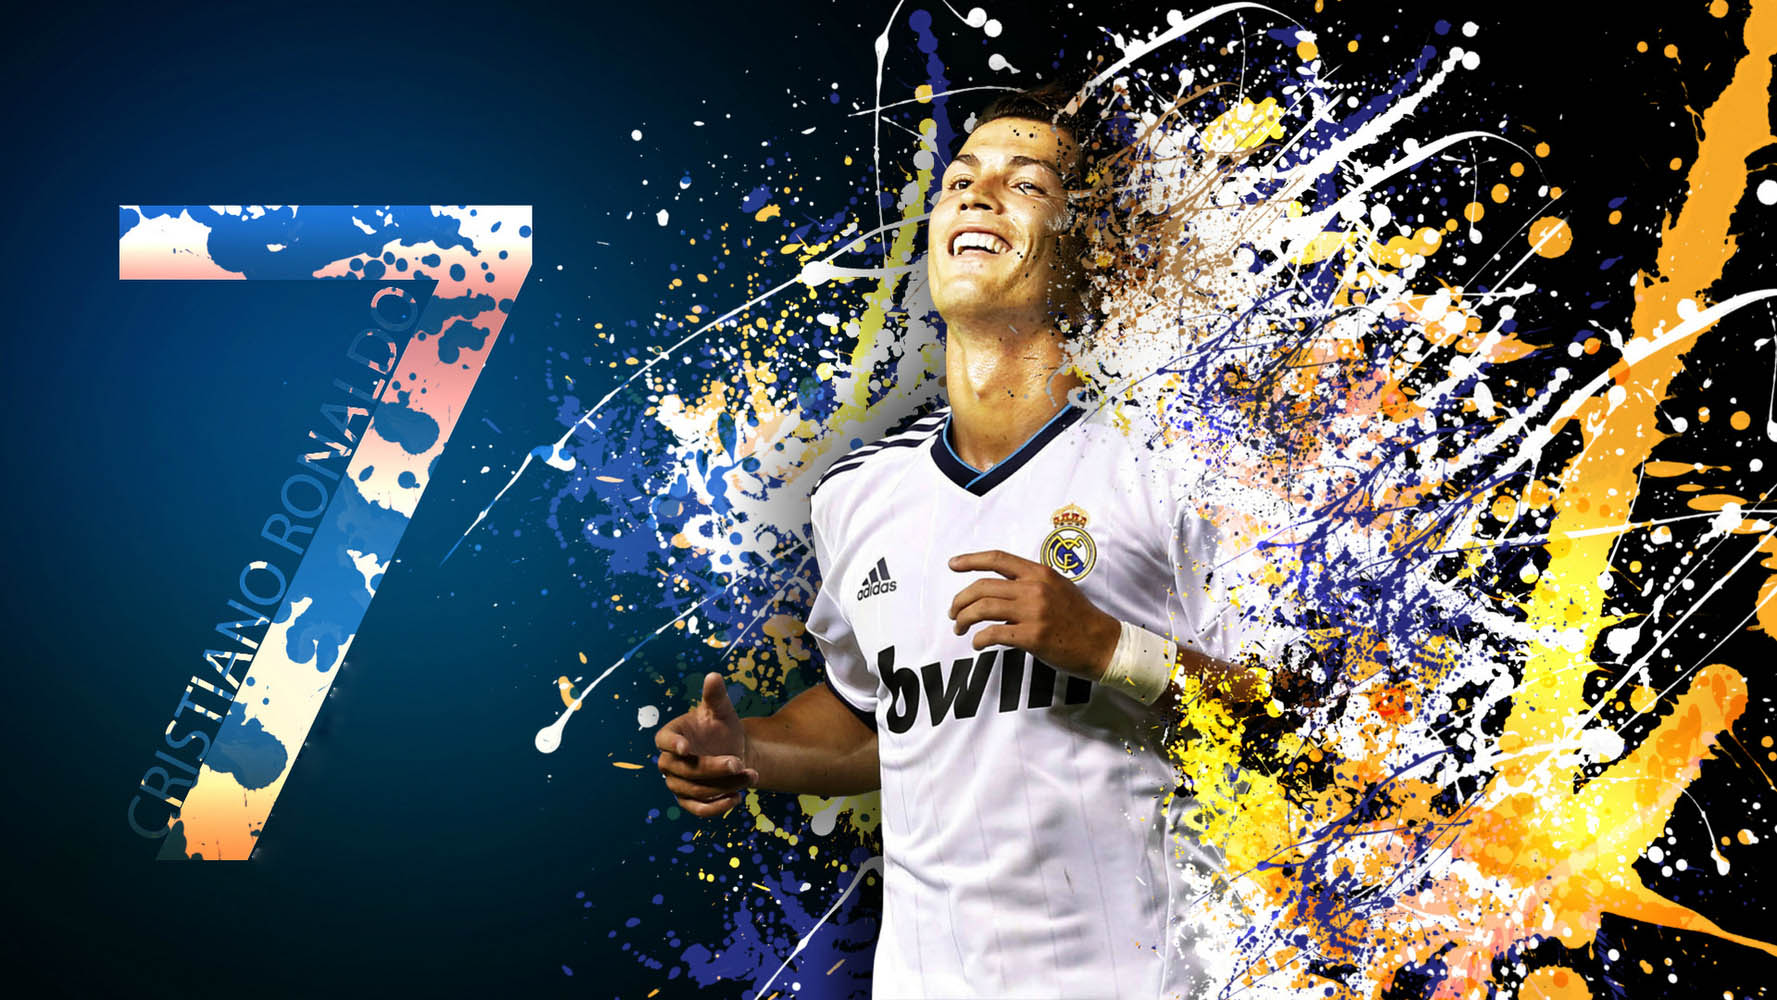 Christiano Ronaldo Wallpaper 1777x1000